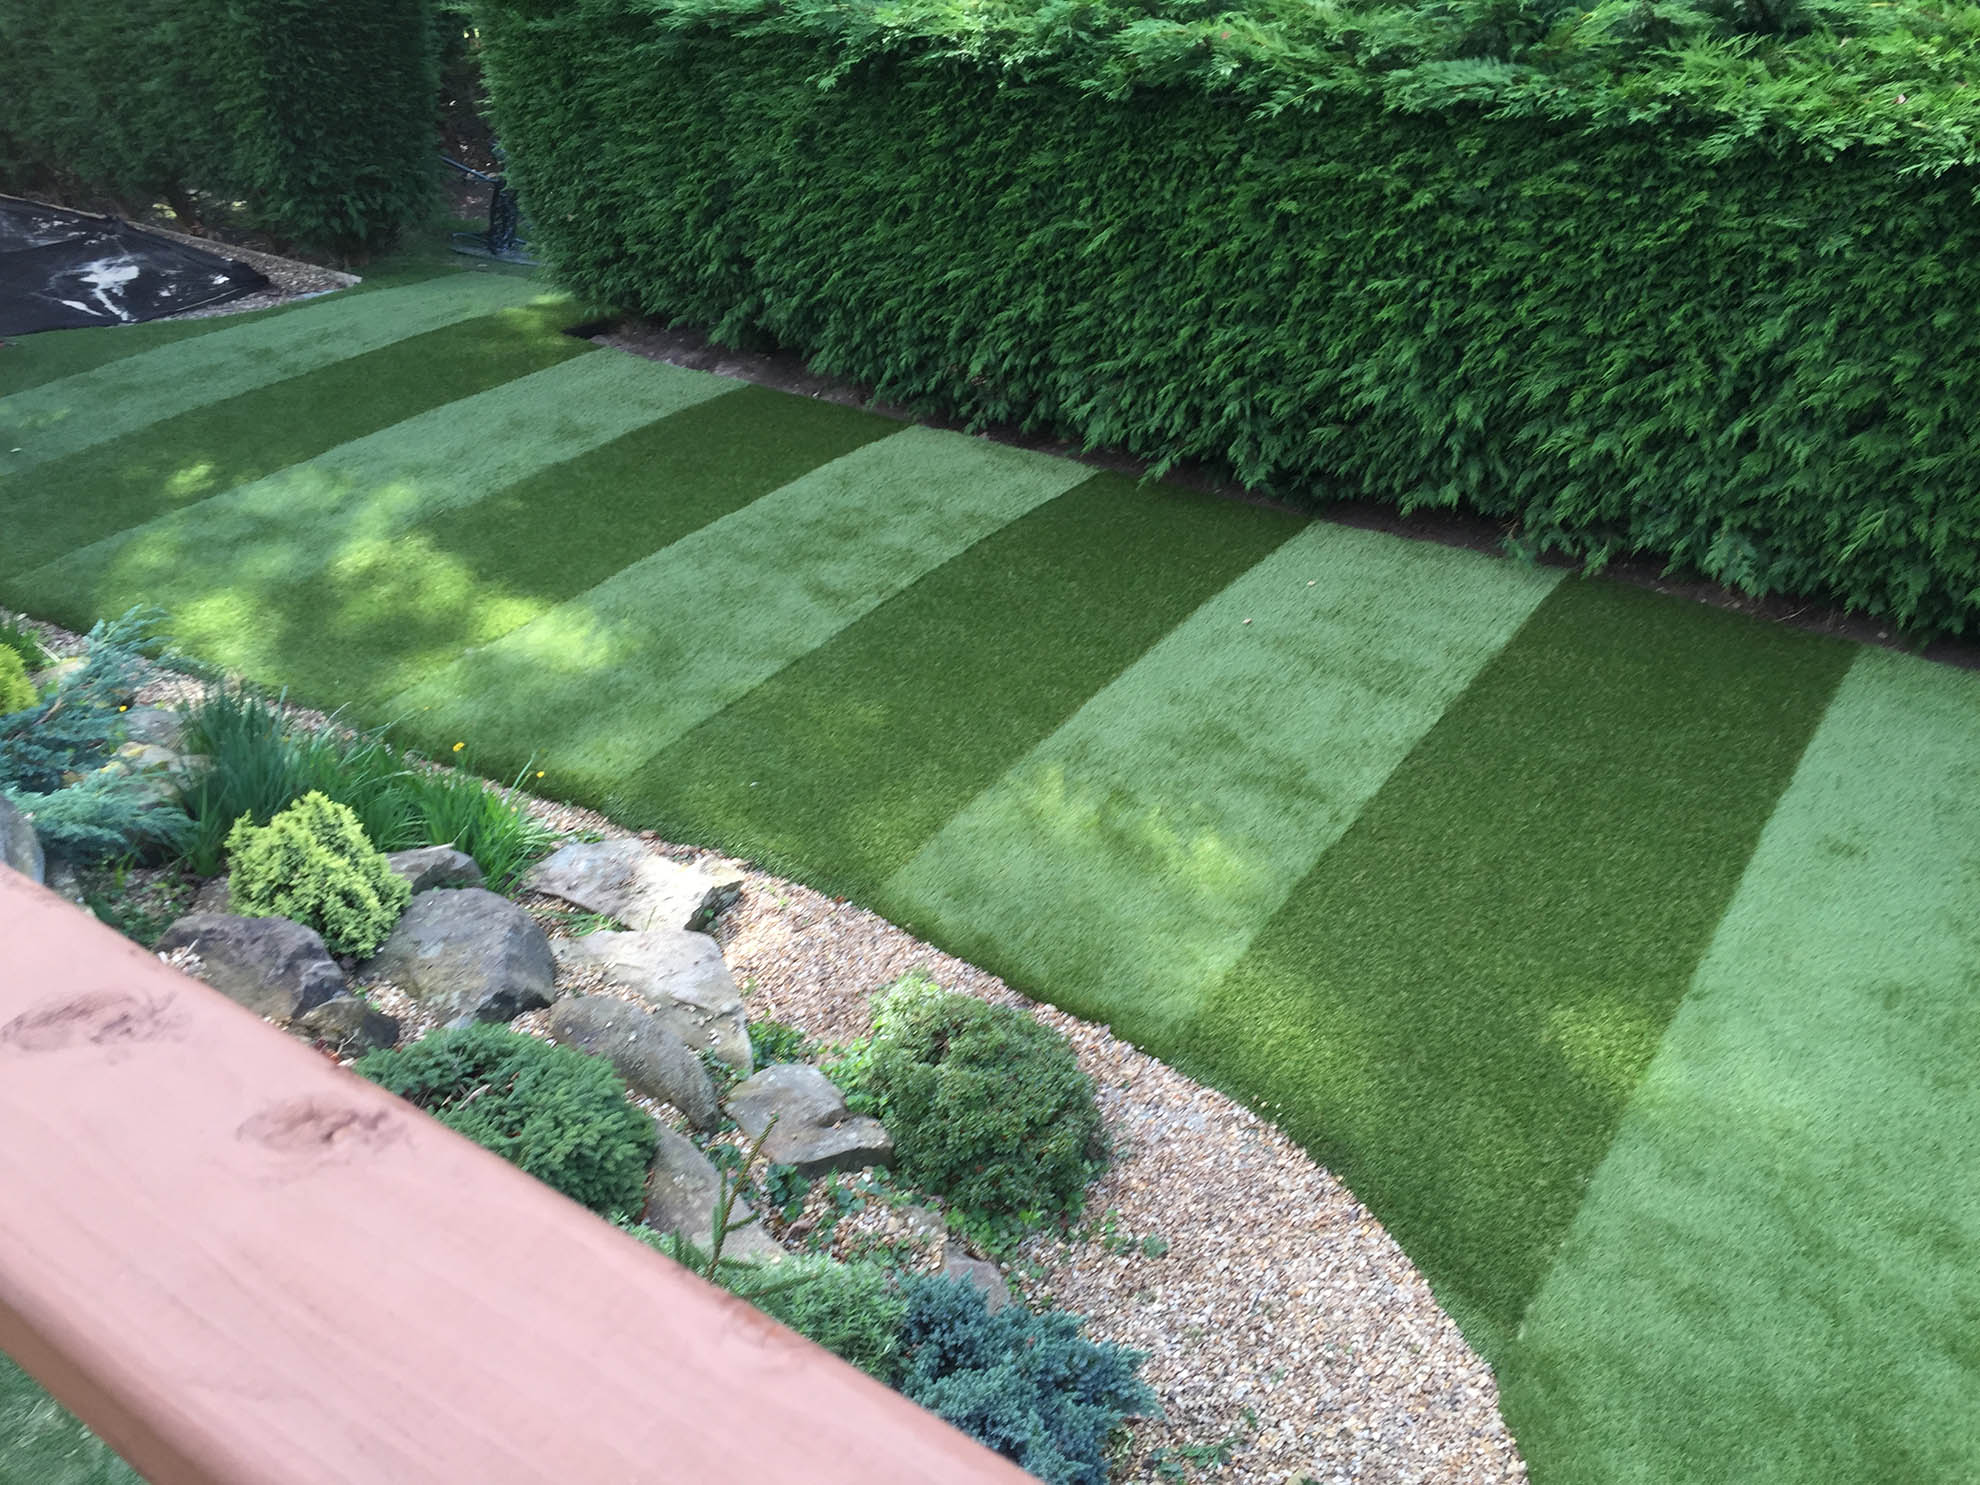 Back Garden Leeds - Artificial Lawn Projects